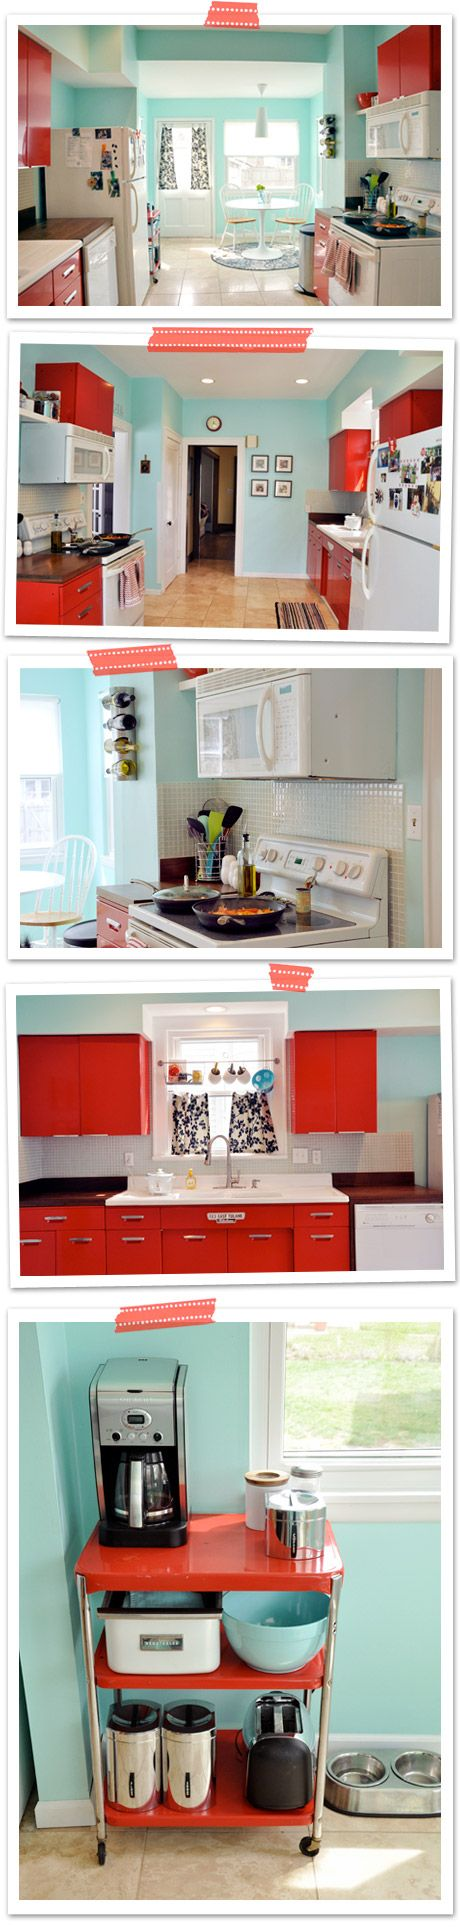 Nice Turquoise U0026 Red !!! My Kitchen Colors !!! | Farmhouse Chic Kitchen |  Pinterest | Kitchen Colors, Turquoise And Kitchens